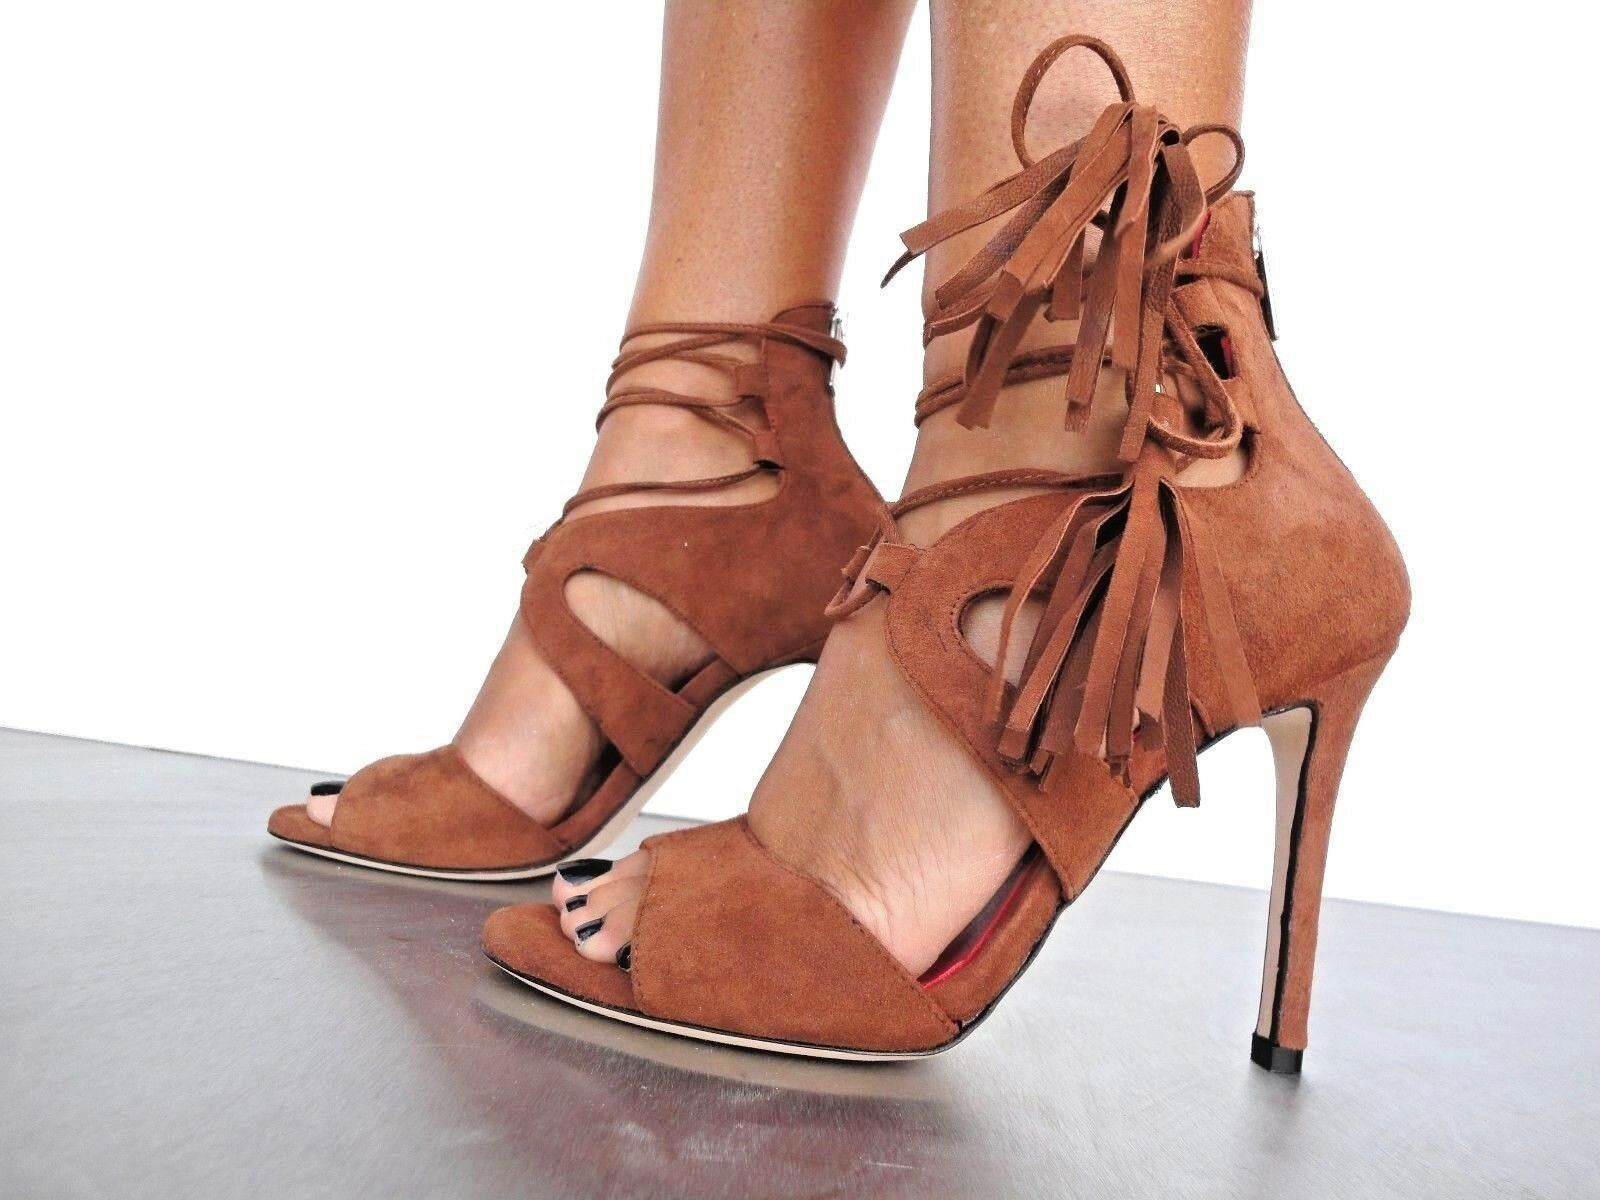 CQ COUTURE C TOM SANDAL SANDALI SANDALEN LACE-UP SUEDE LEATHER BROWN MARRONE 43